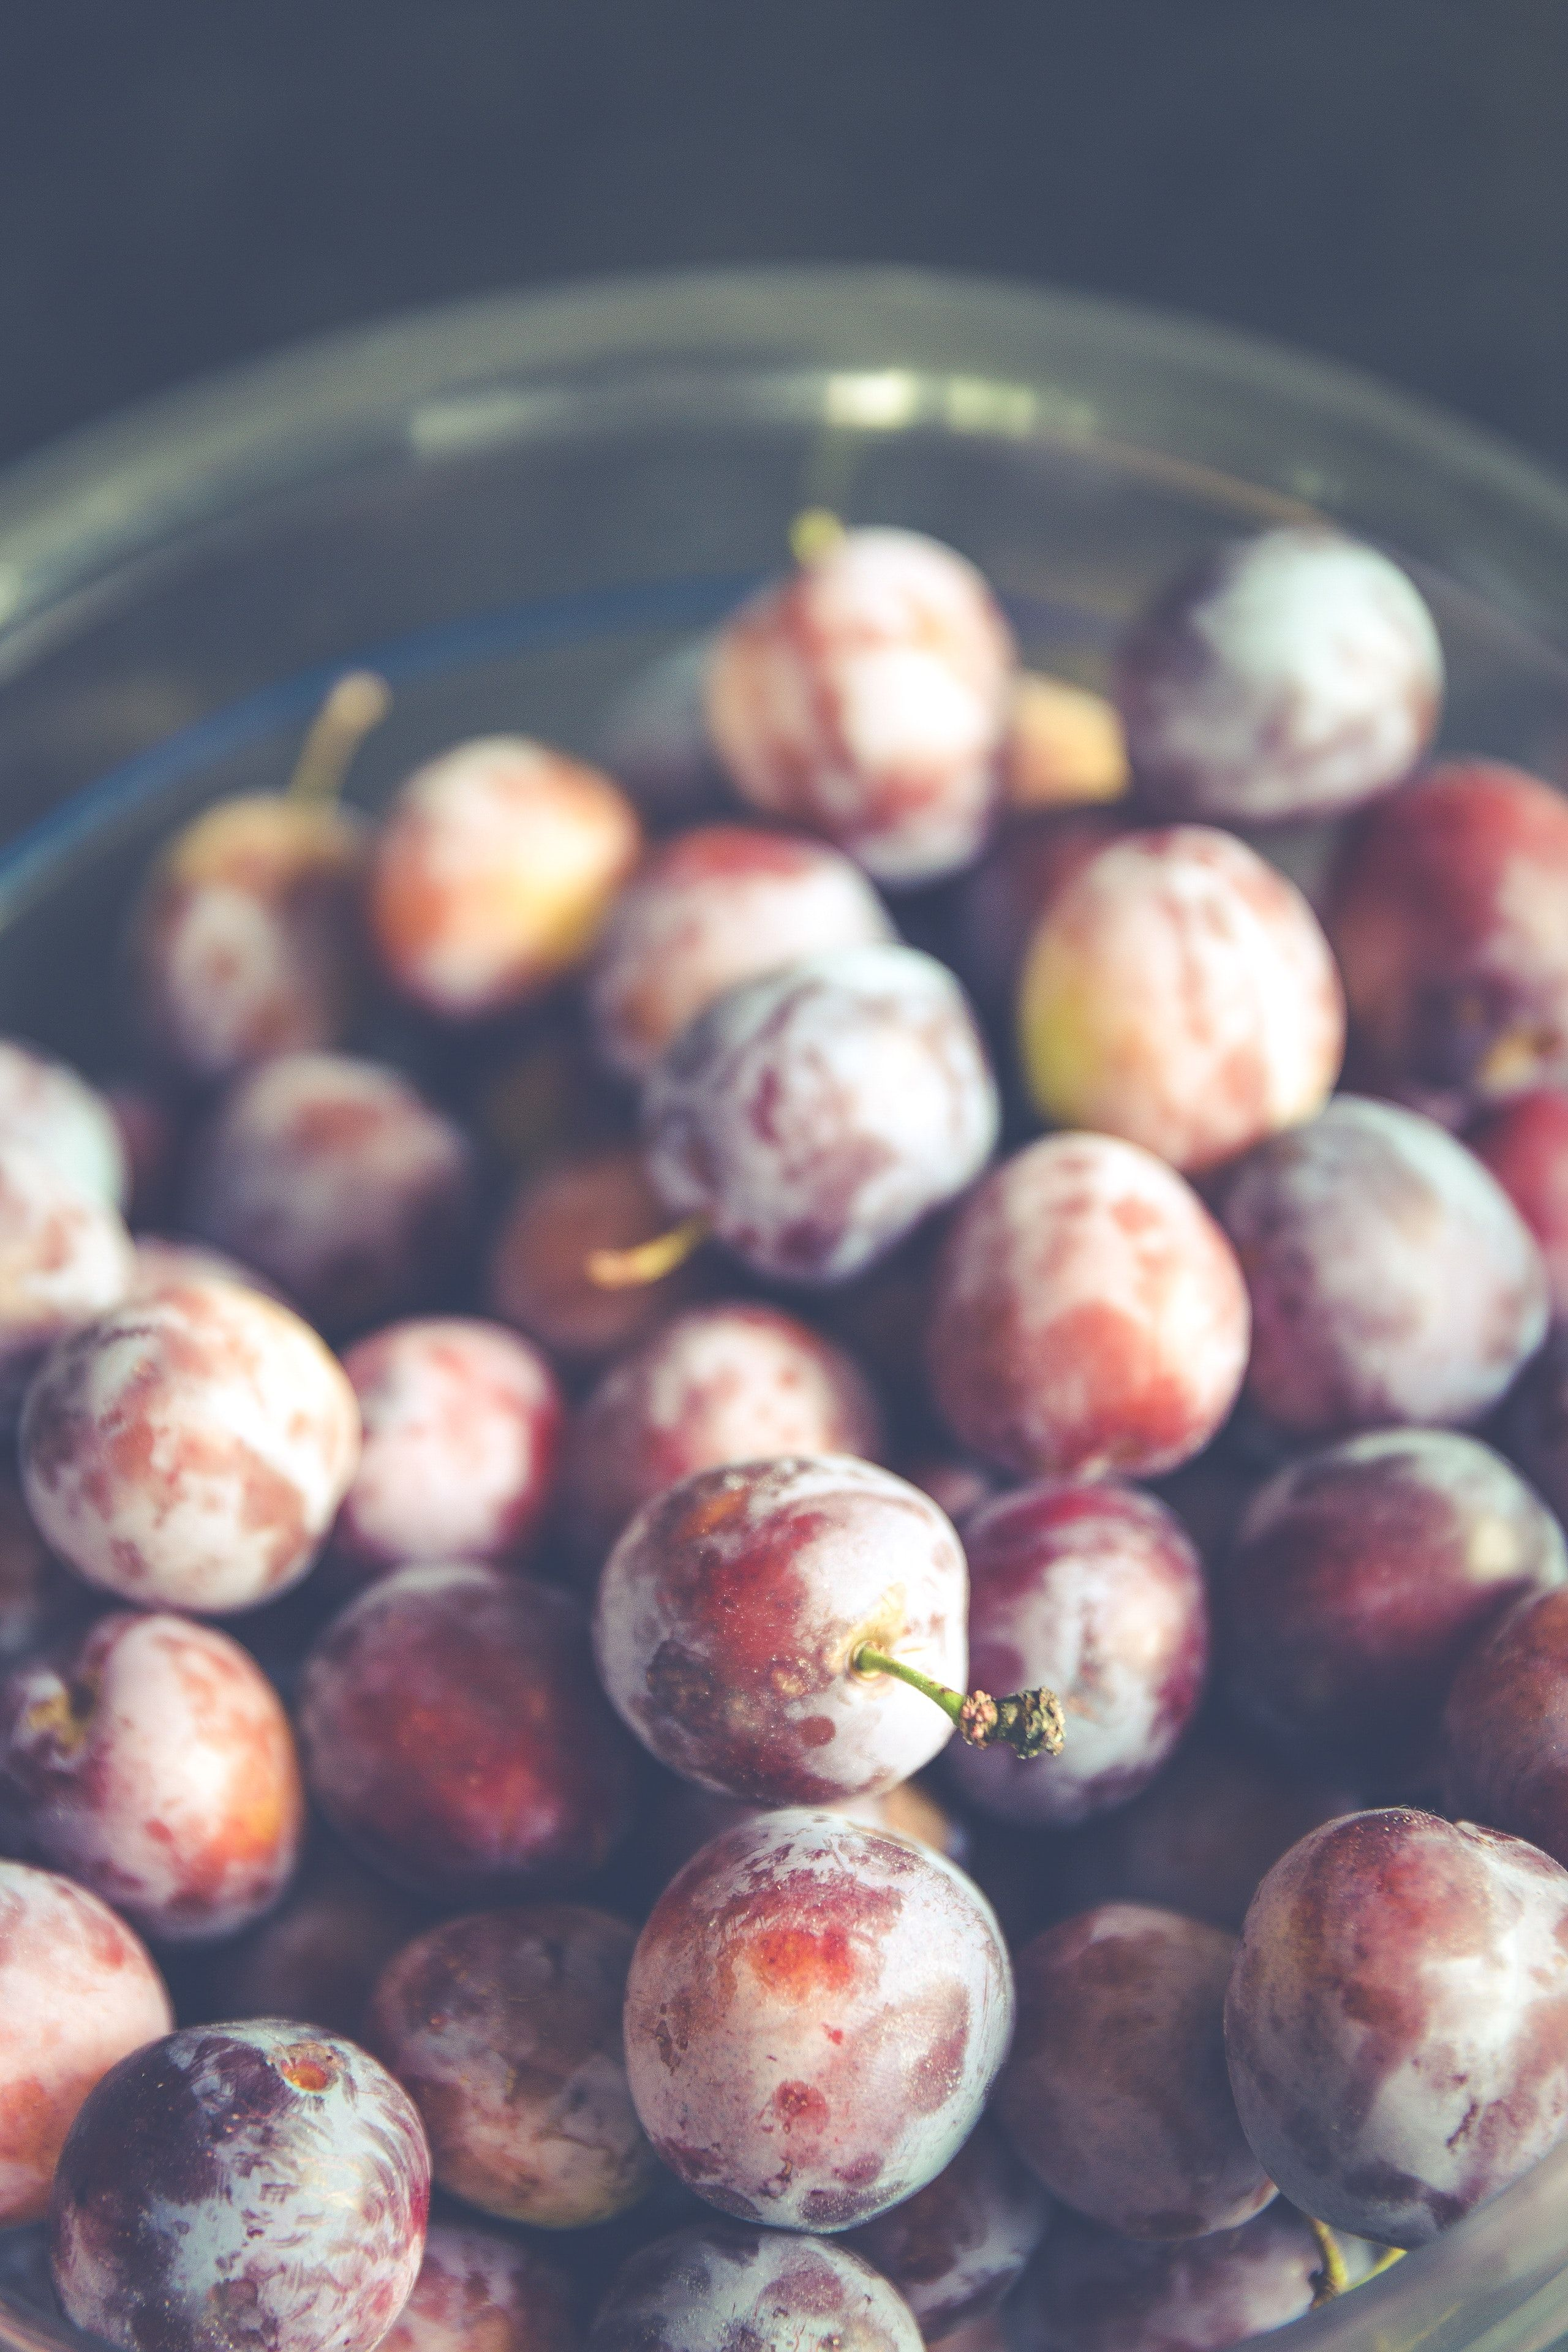 A bunch of picked red grapes free image by